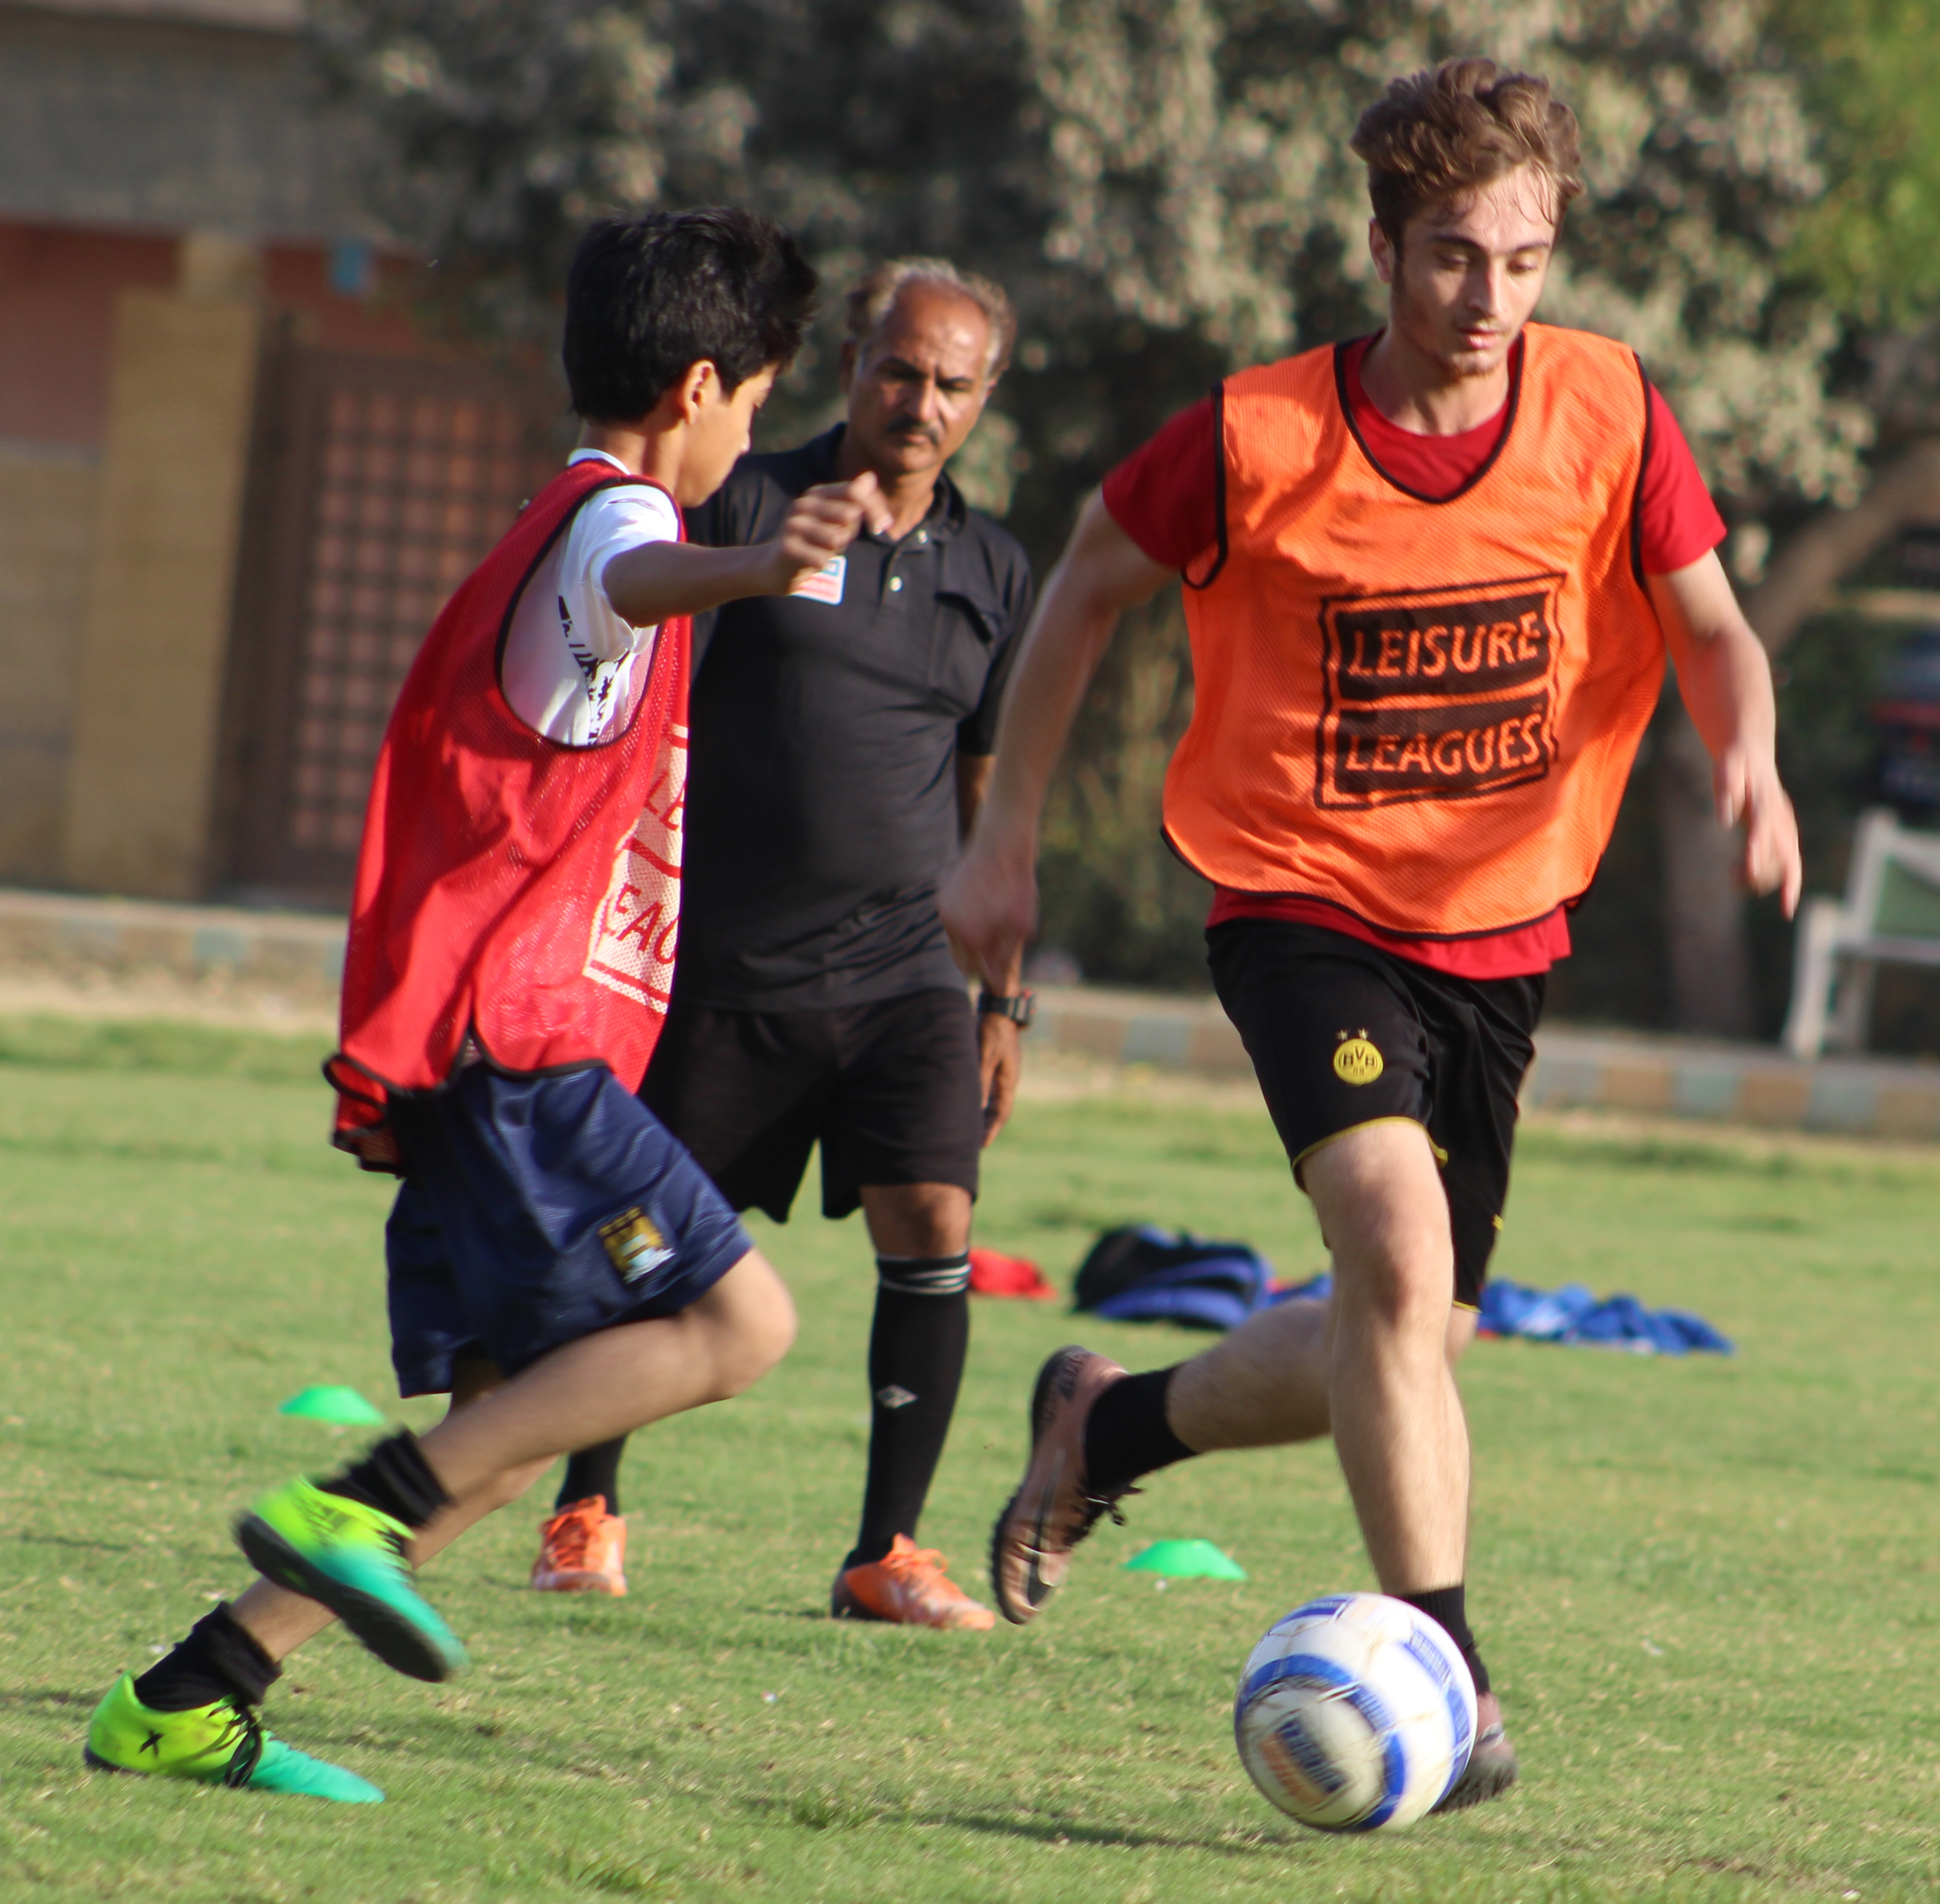 FC Evolution thrashes Sir Syed FC by 2-0 in  Leisure Leagues Season III